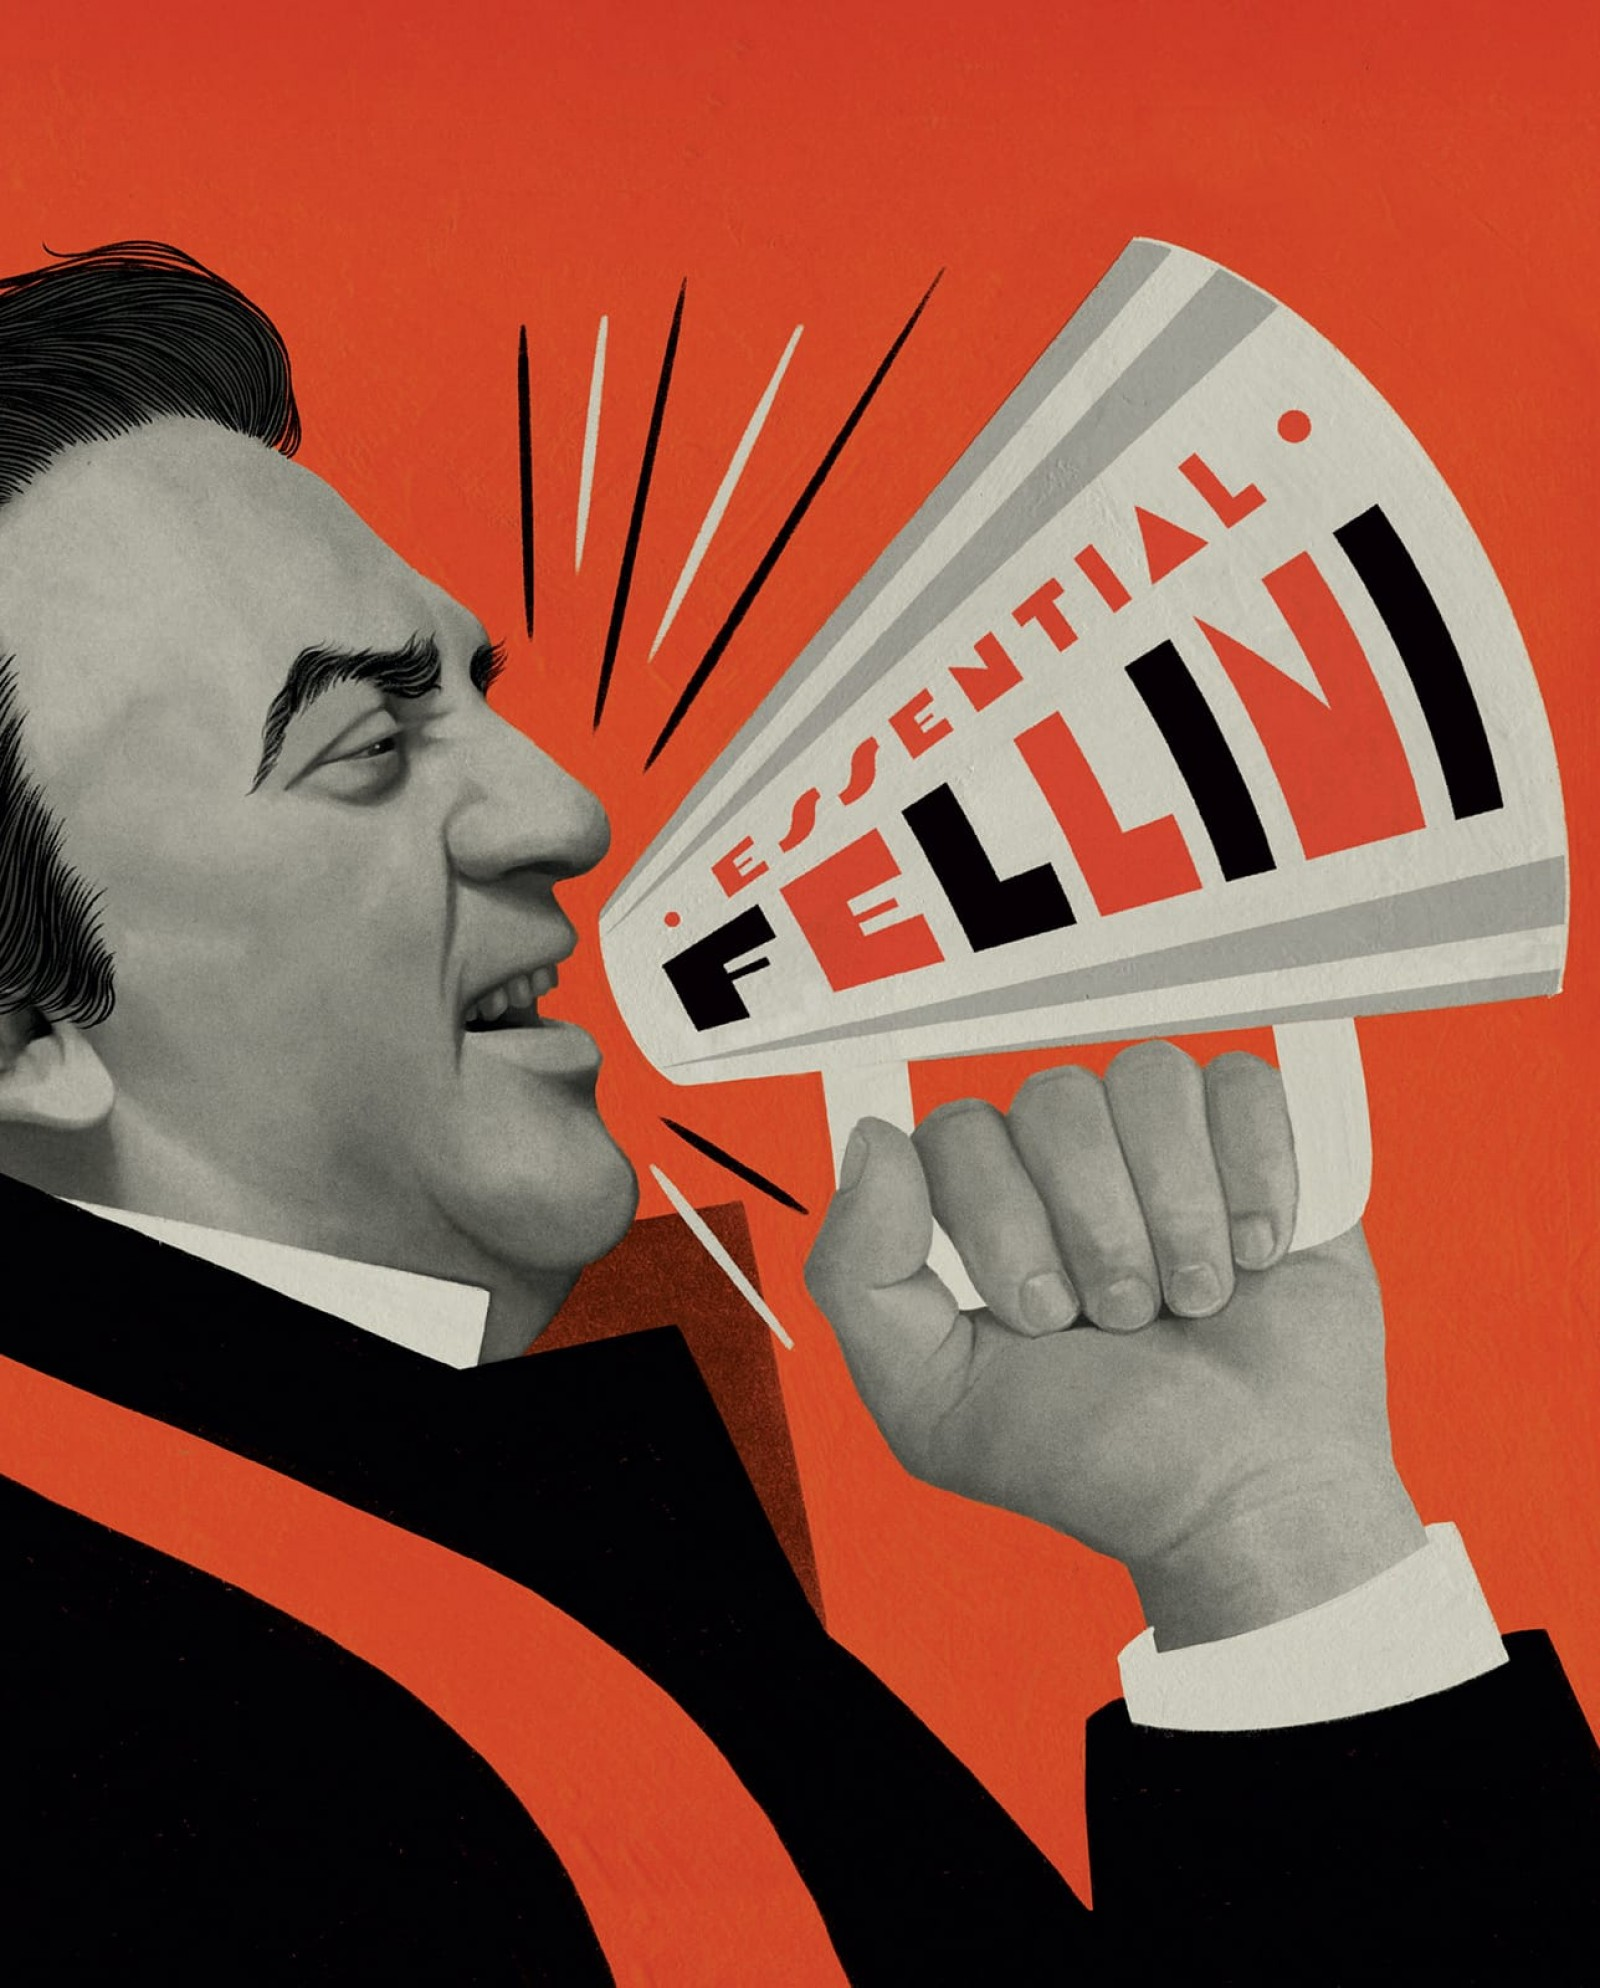 Essential Fellini | The Criterion Collection